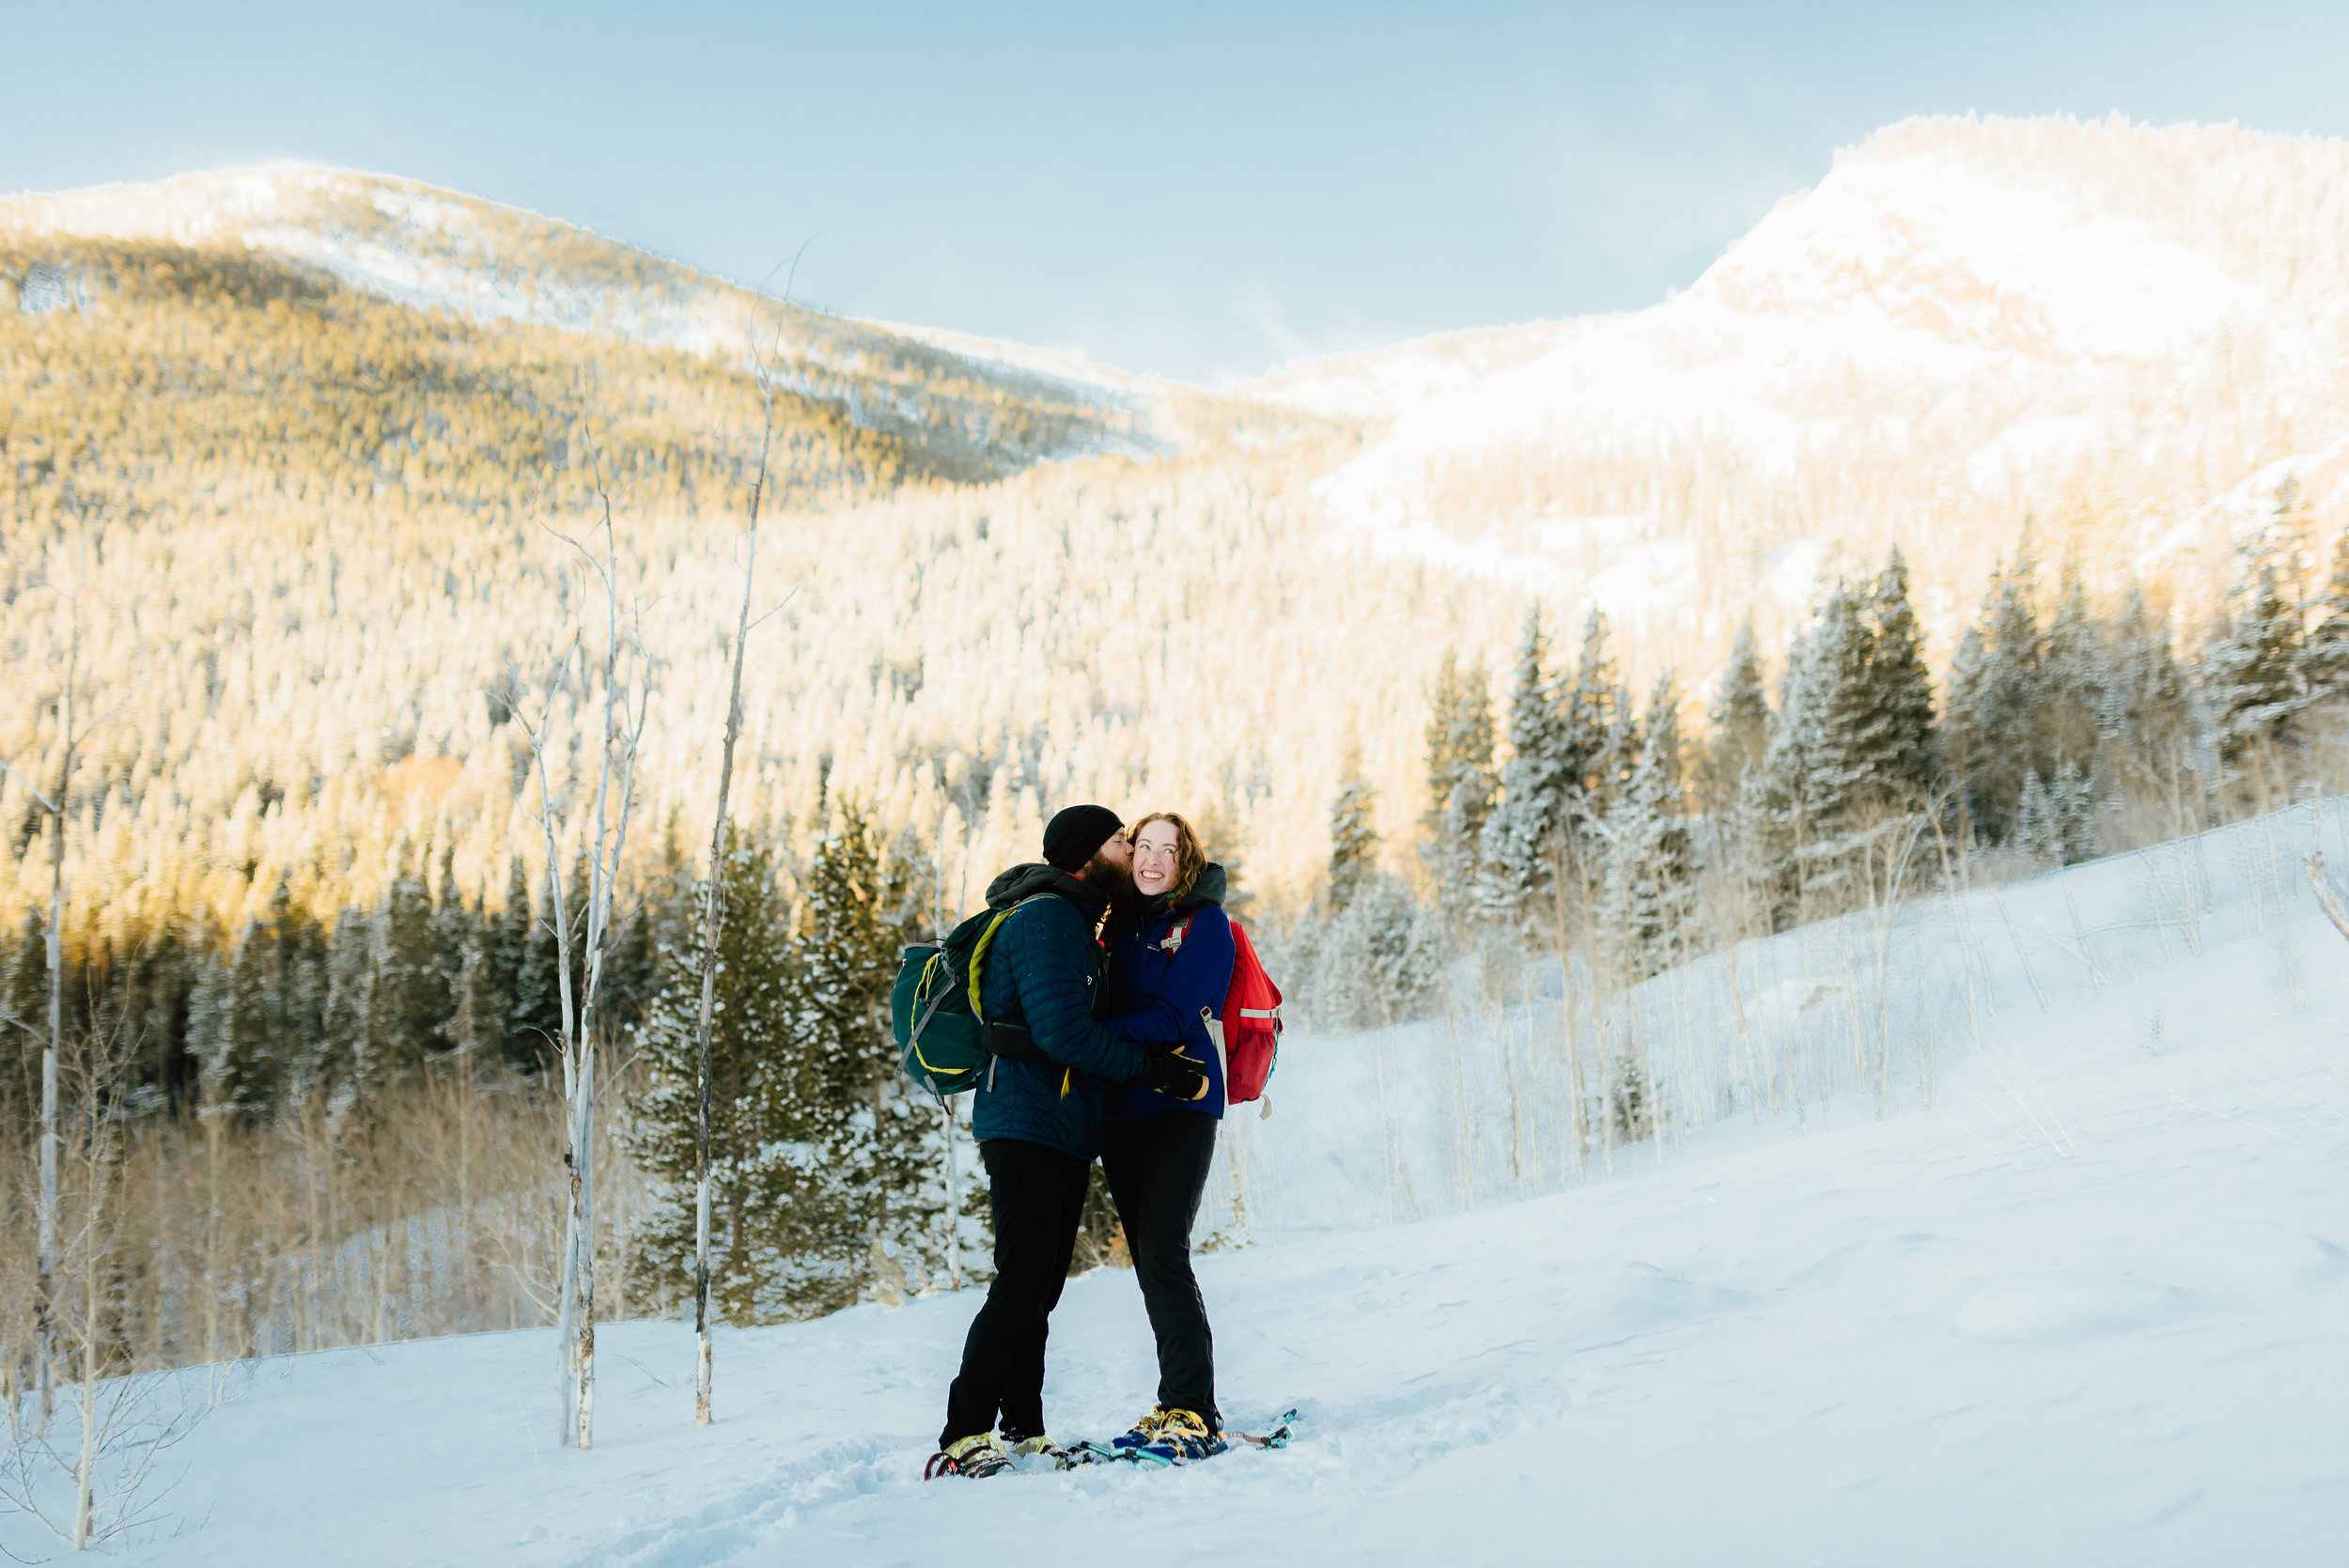 I totally want to have my engagement shoot at Lost Lake in Indian Peaks Wilderness Area! I love the idea of a mountain snowshoeing engagement photo session!| Mountain engagement photos by adventurous engagement photographer, Maddie Mae.